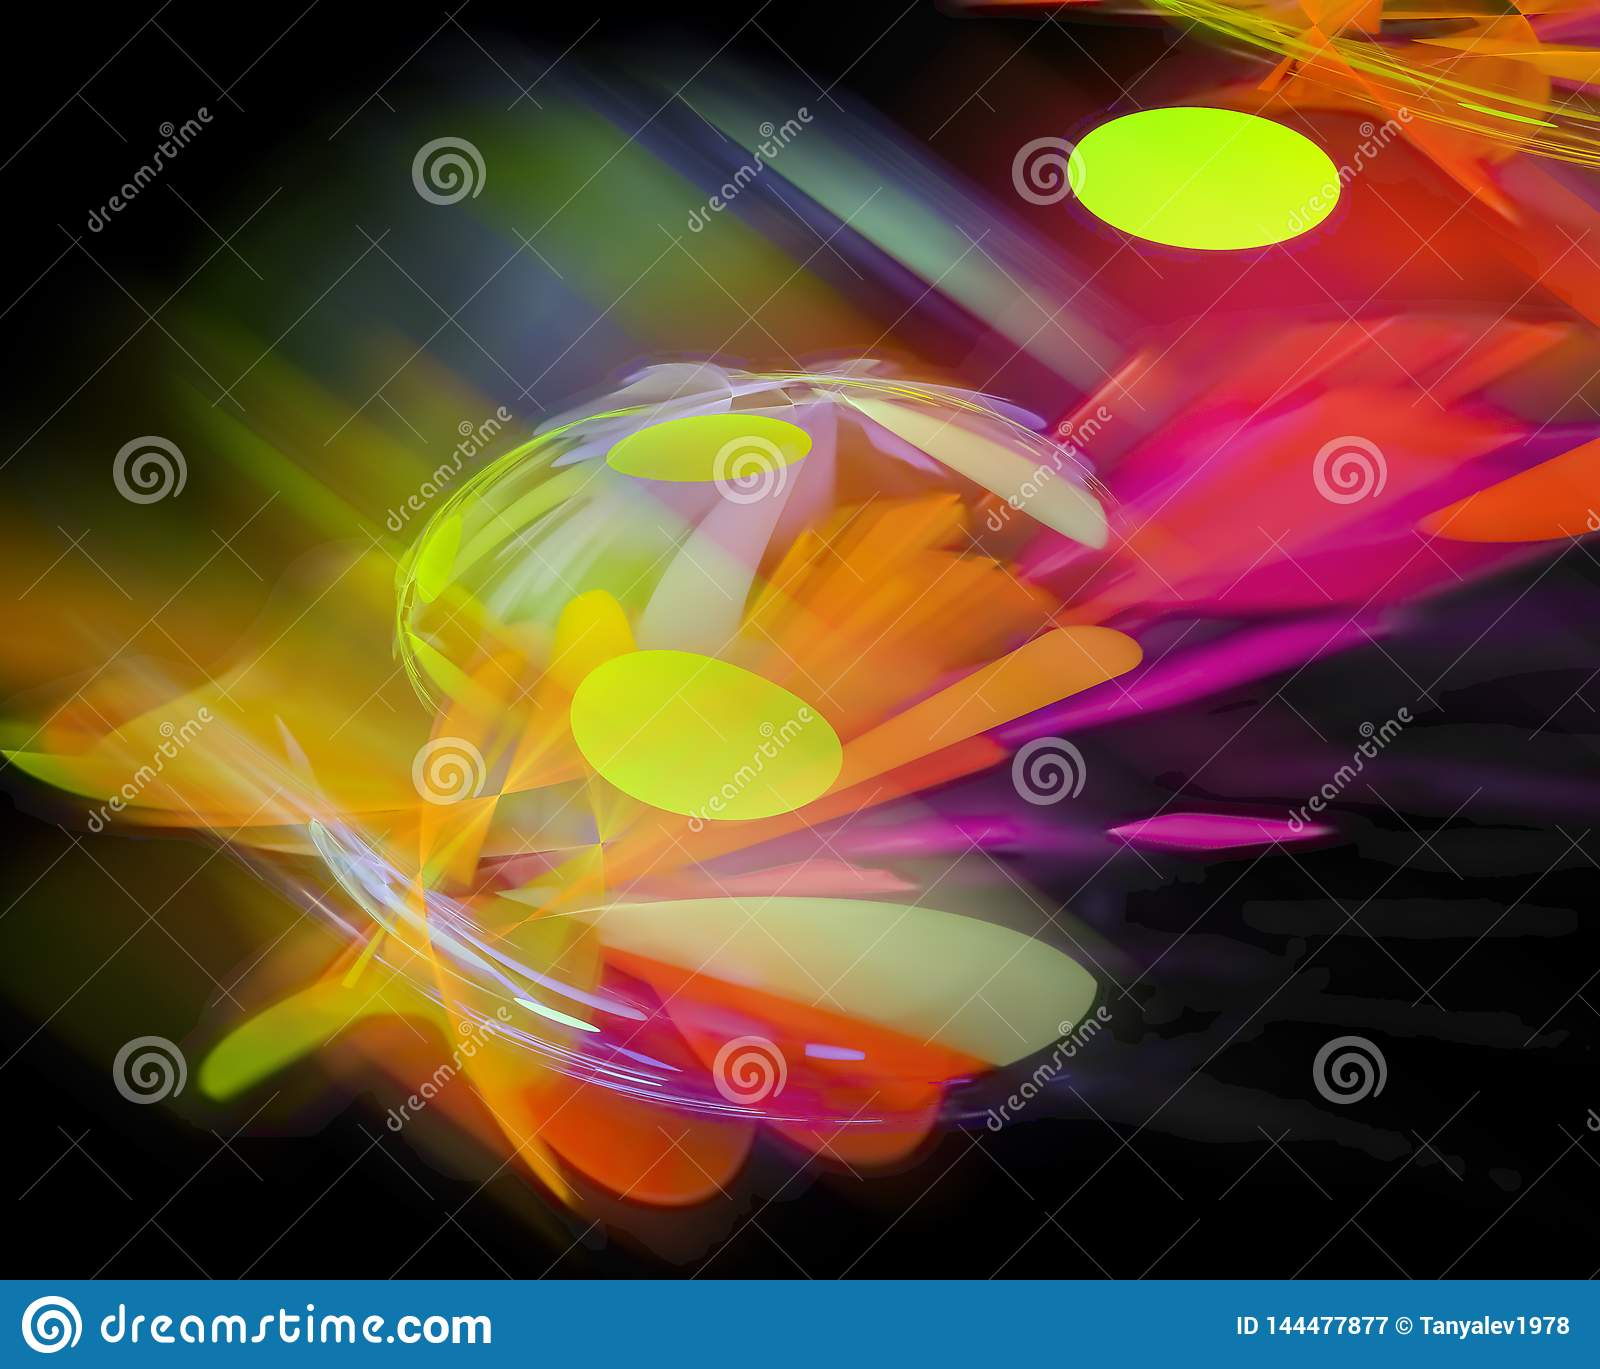 Abstract Fractal, Effect Vibrant Creativity Dynamic